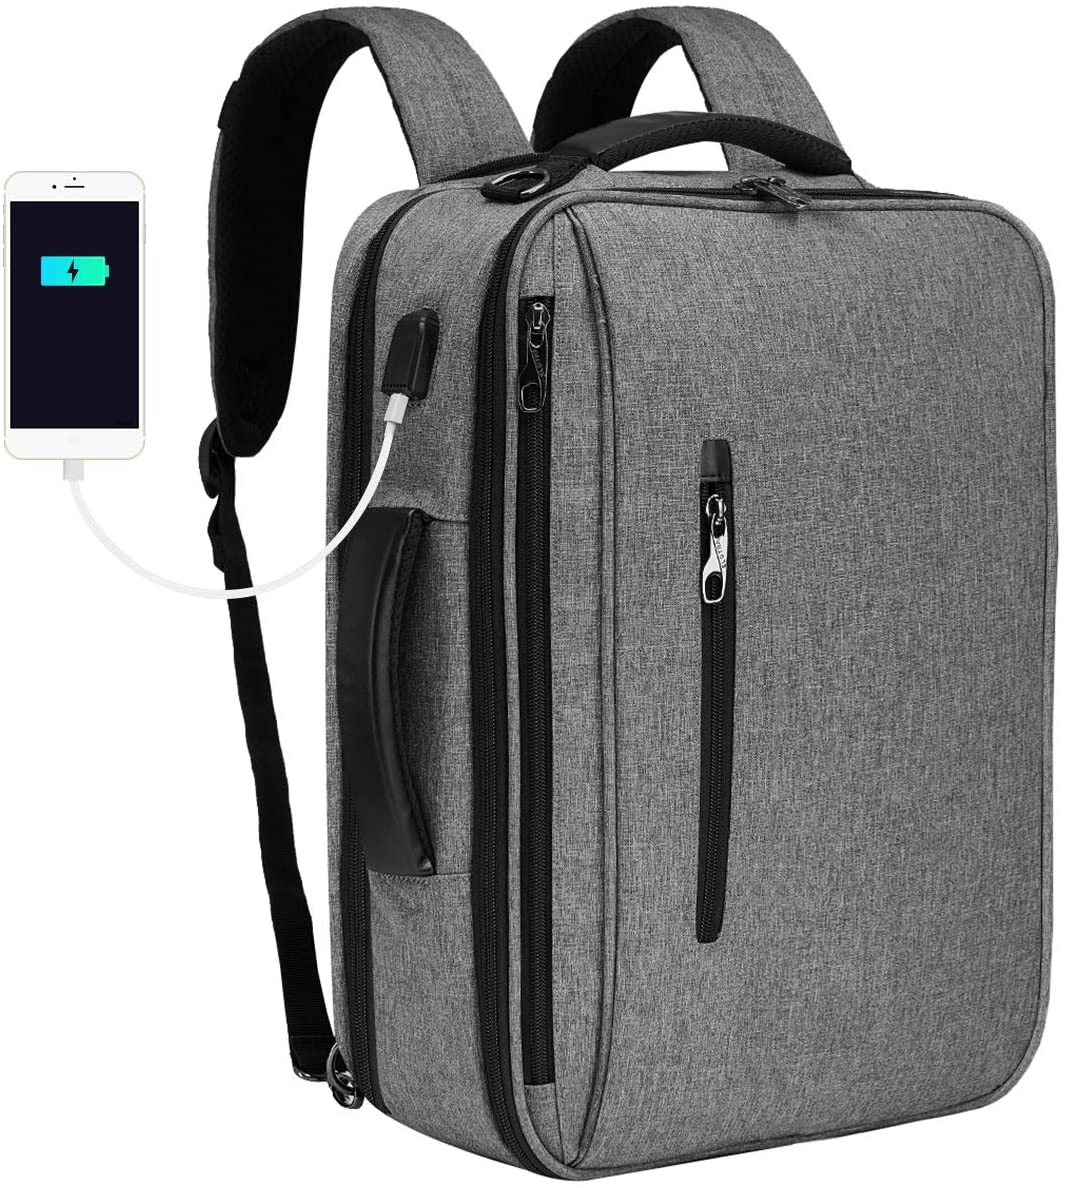 SLOTRA Convertible Backpack 15.6 Laptop Bag 3 in 1 Carry On Backpack Briefcase Messenger Shoulder Bag With Removable Strap Grey